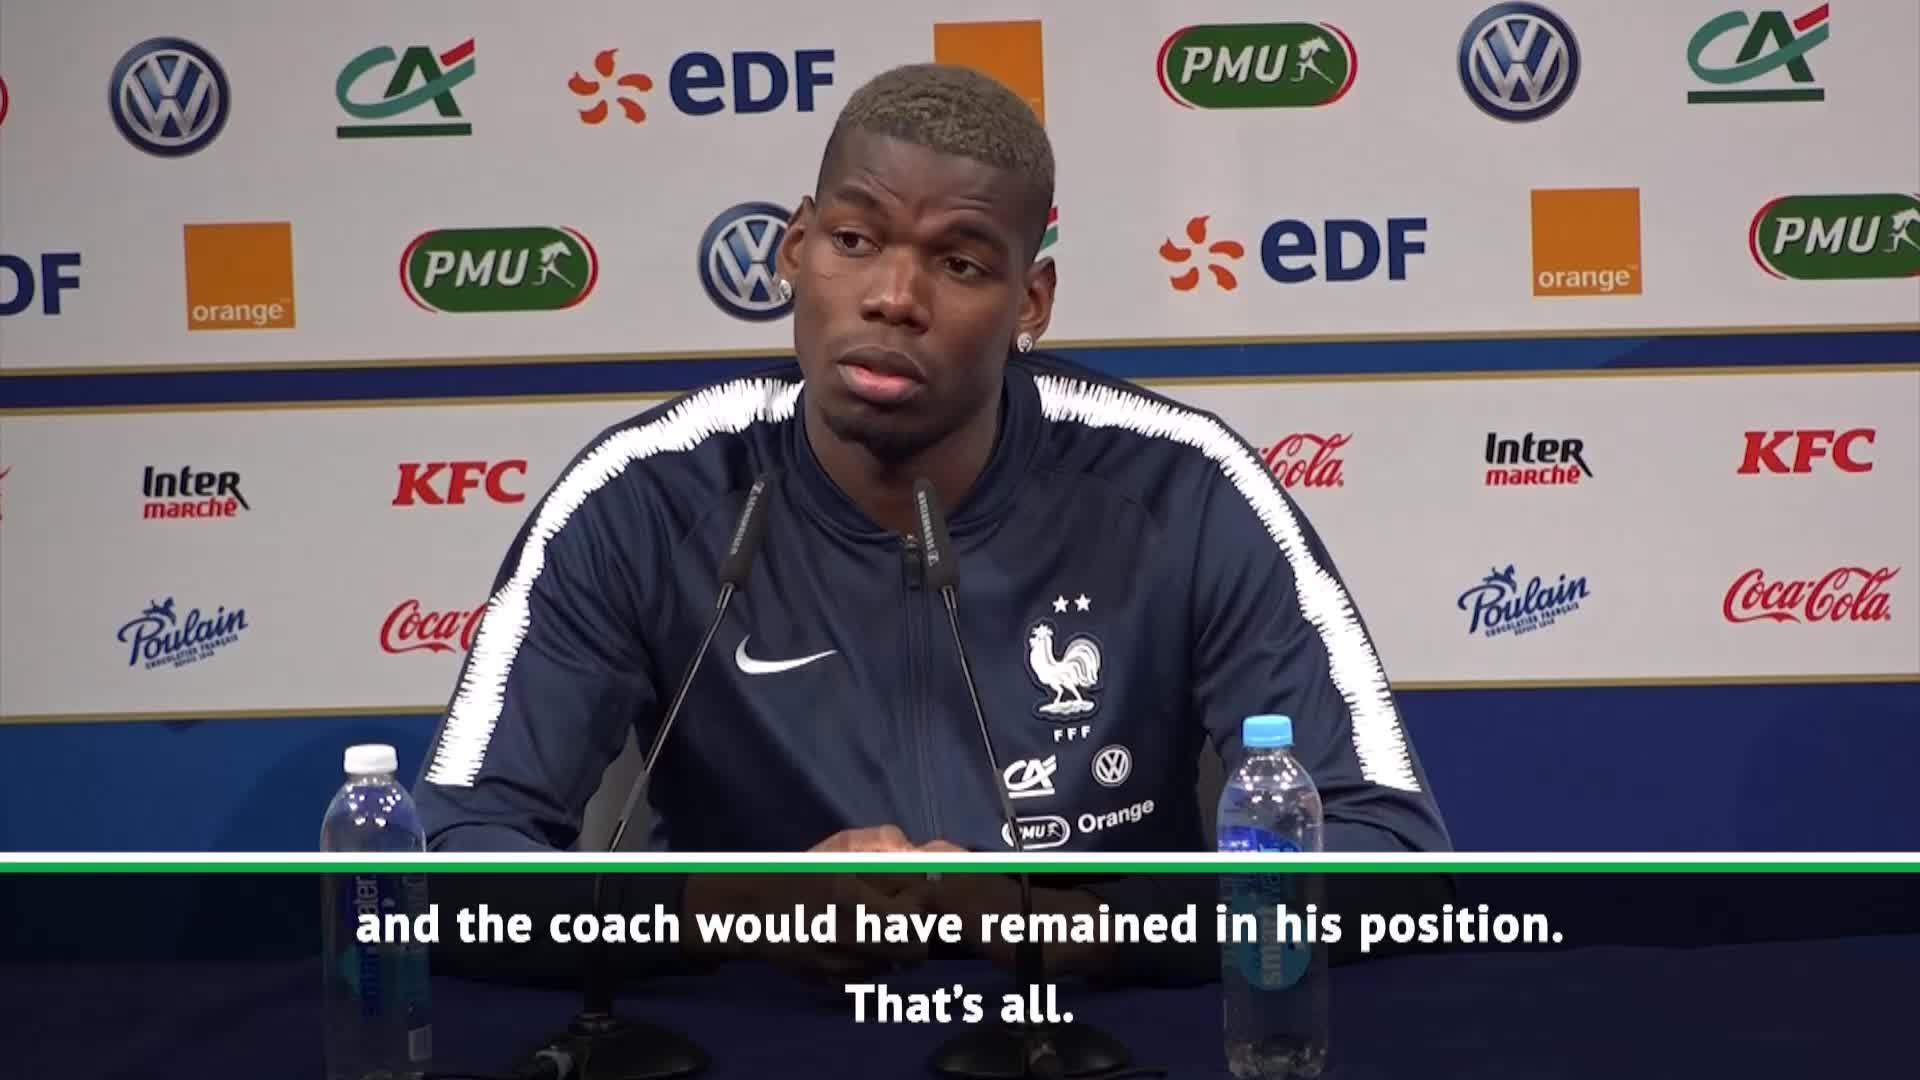 If we were winning, Mourinho would have stayed at Man United! - Pogba